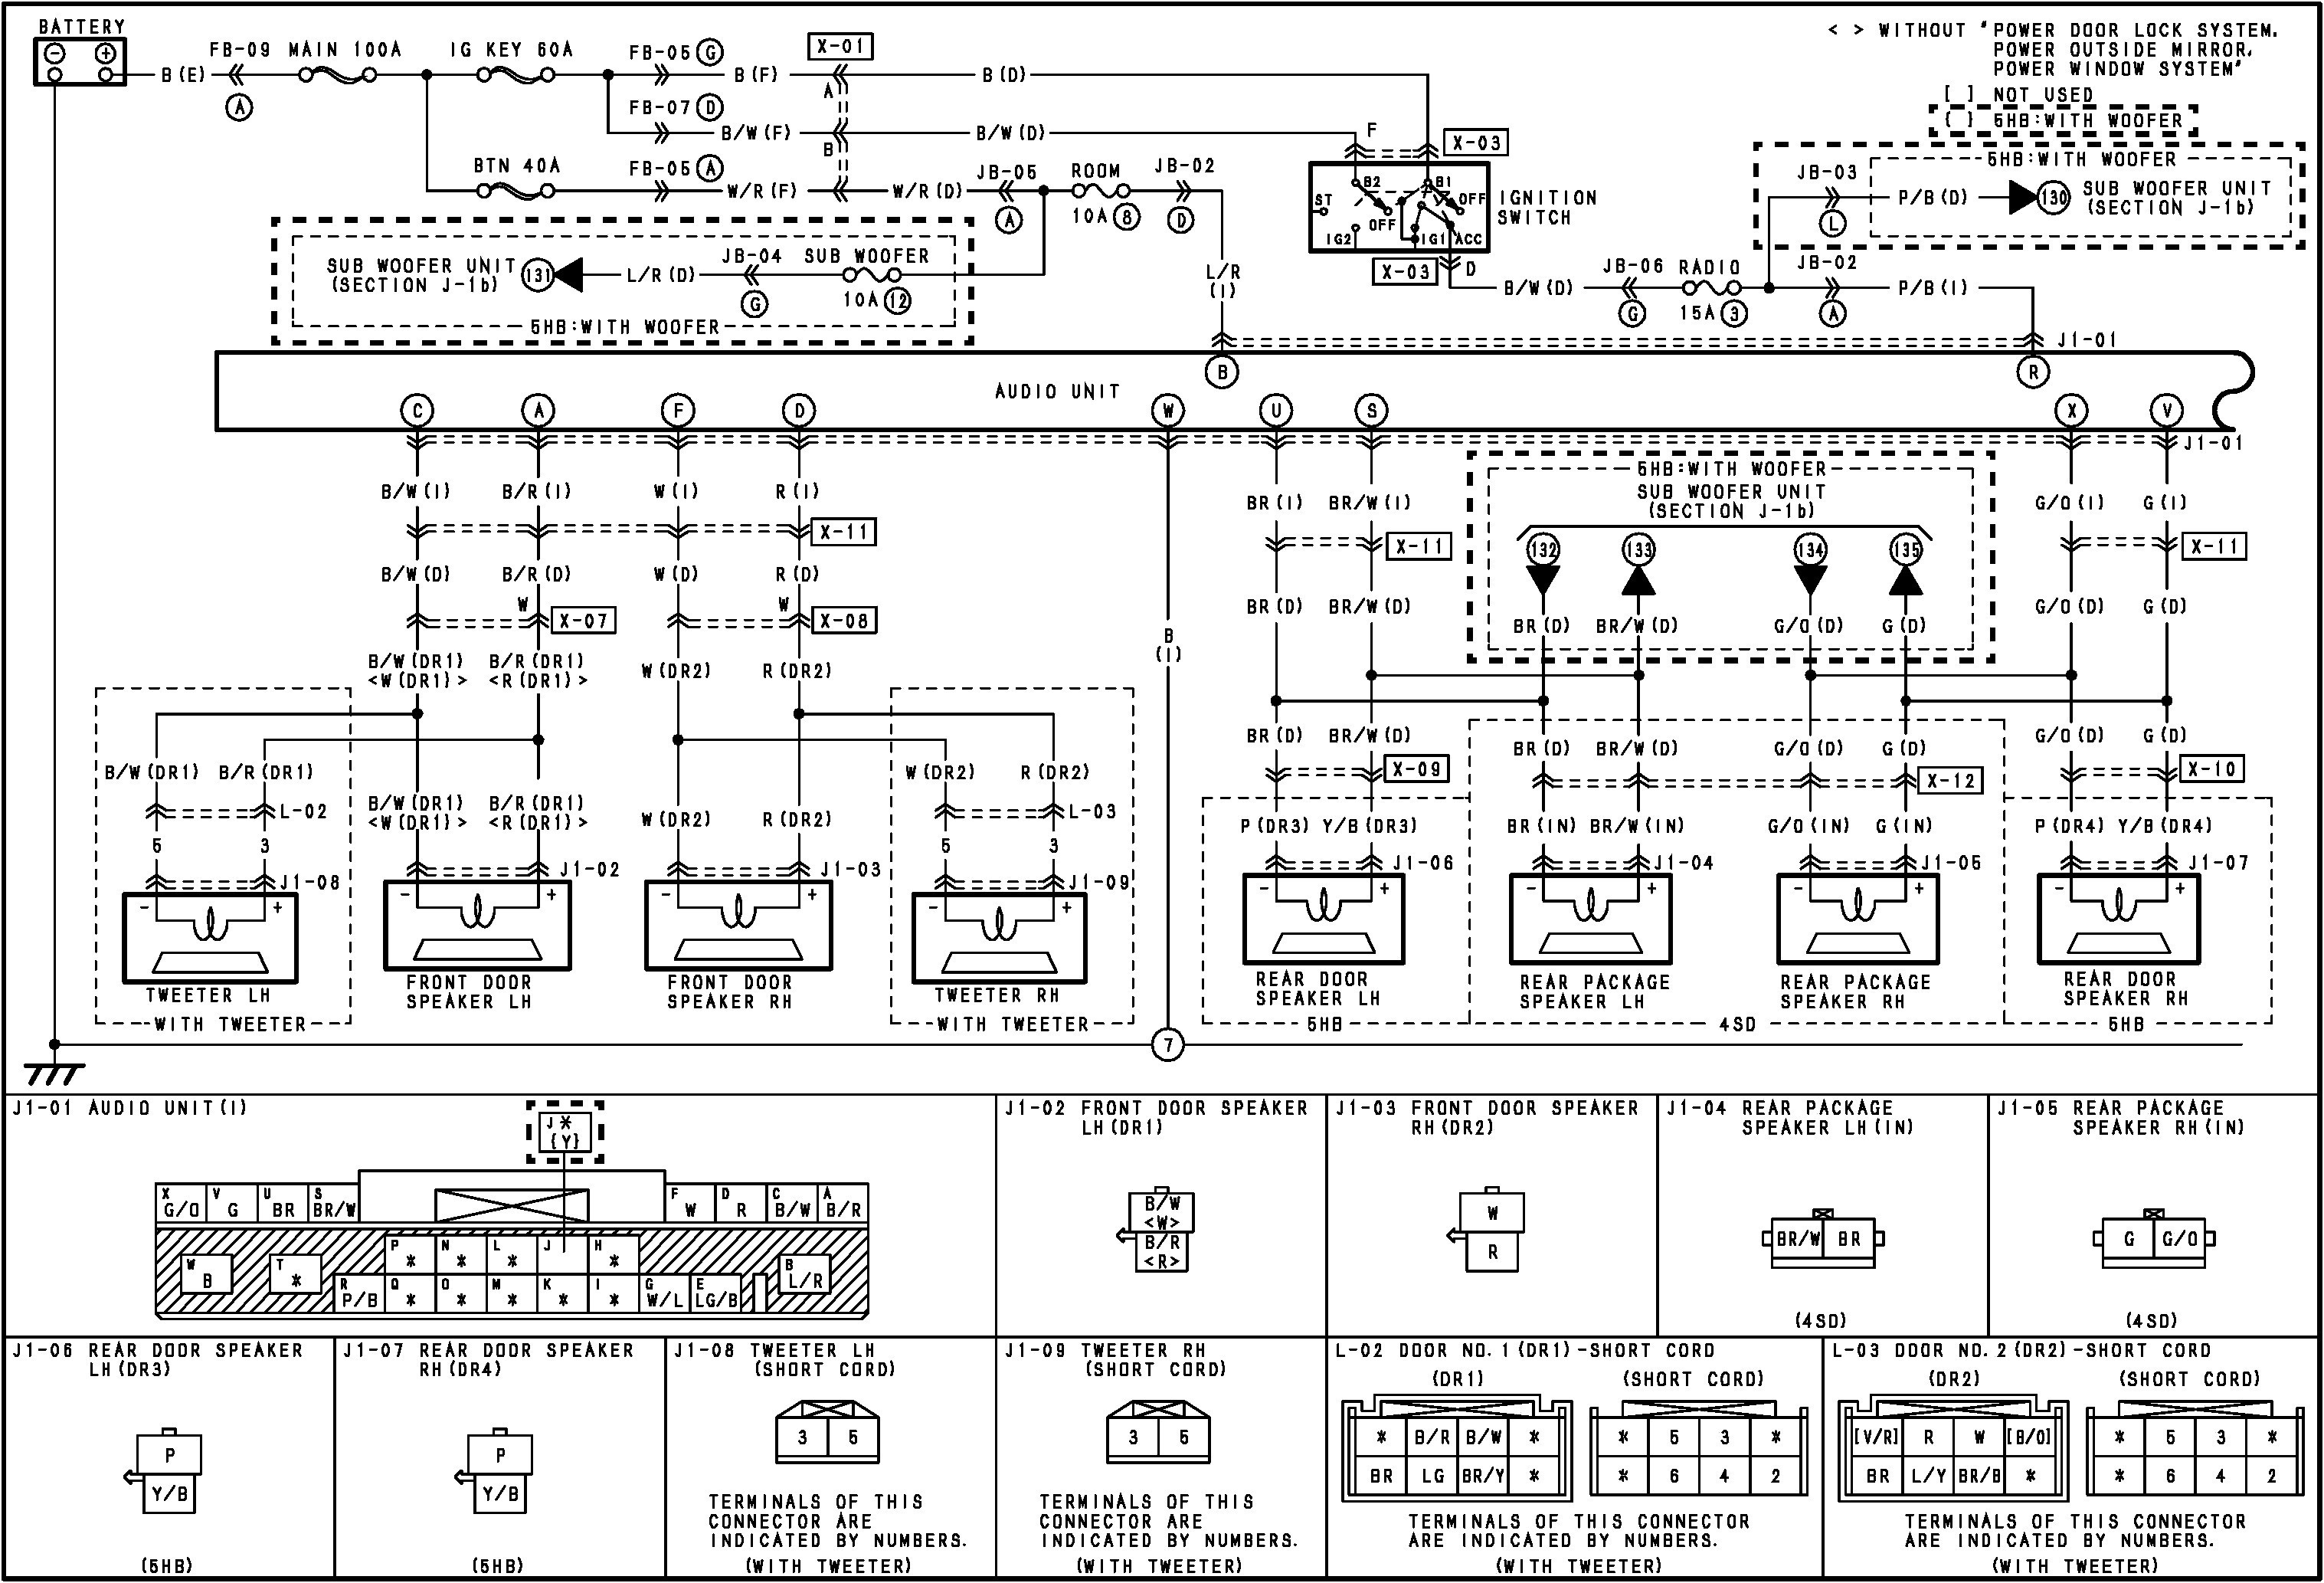 Aem Fic Wiring Diagram Diagrams Furnace Blower Http Pic2flycom Furnaceblowerwiring Just Schematic Rh Lailamaed Co Uk 8